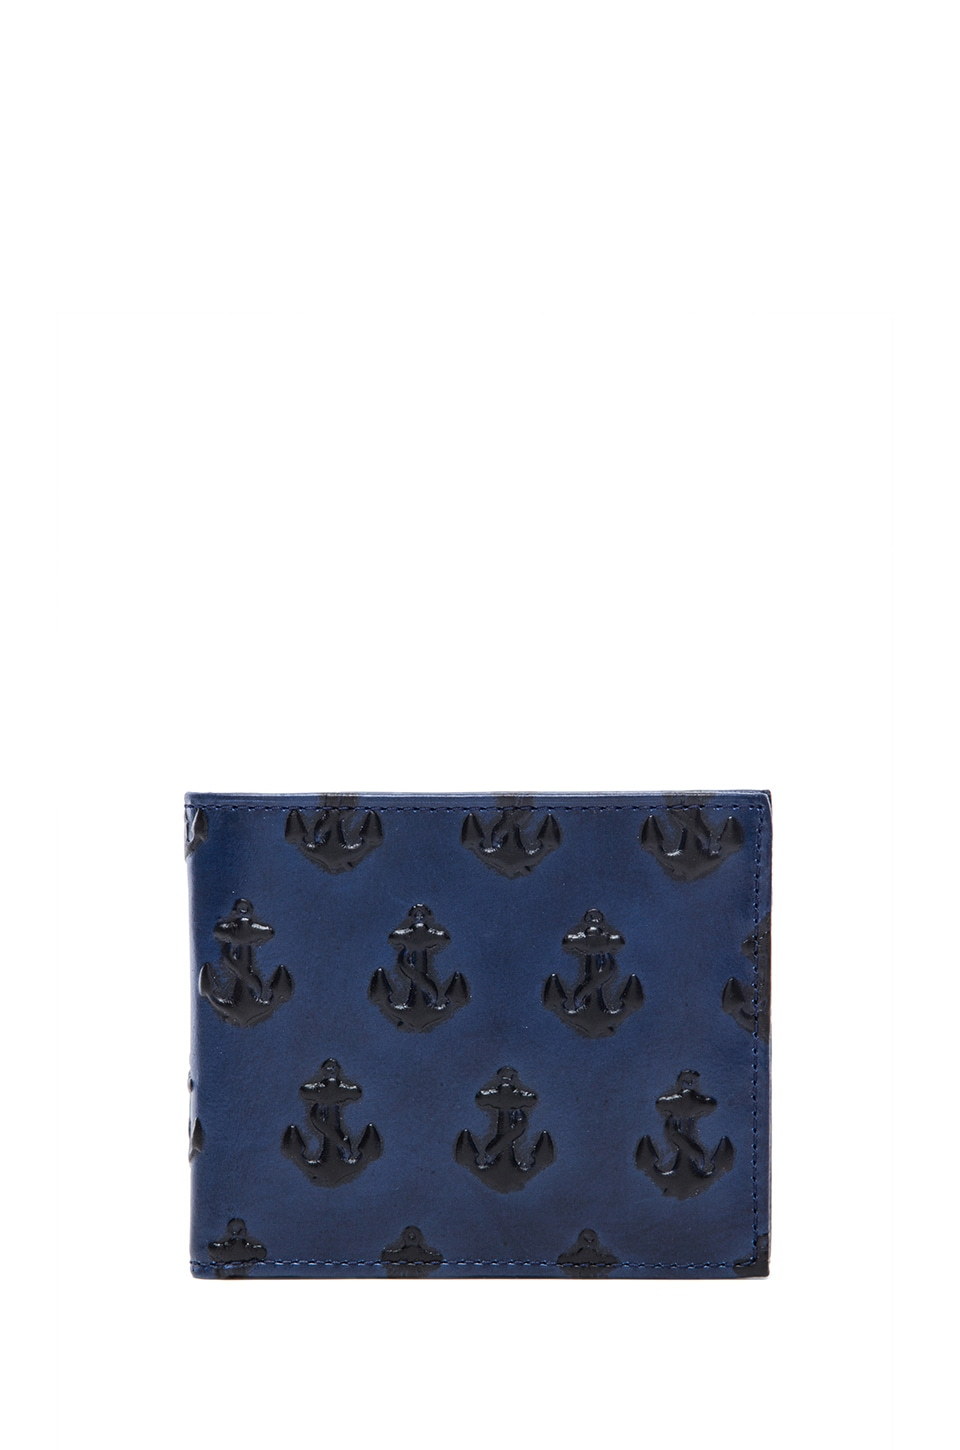 Jack Spade Embossed Anchor Bill Holder Wallet in Navy